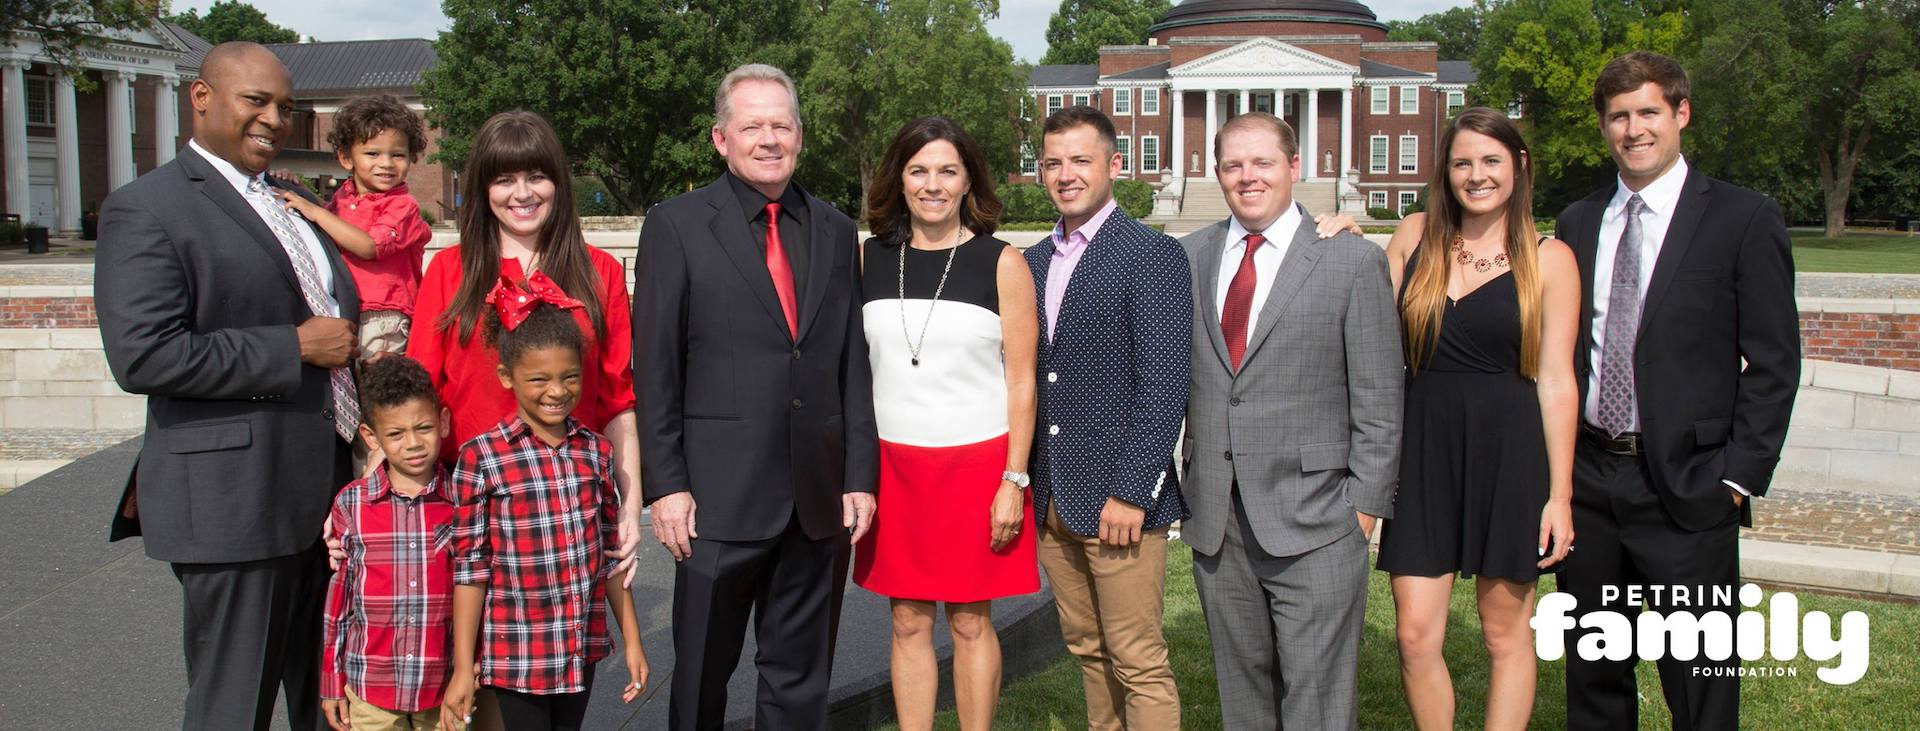 The Petrino Family Photo